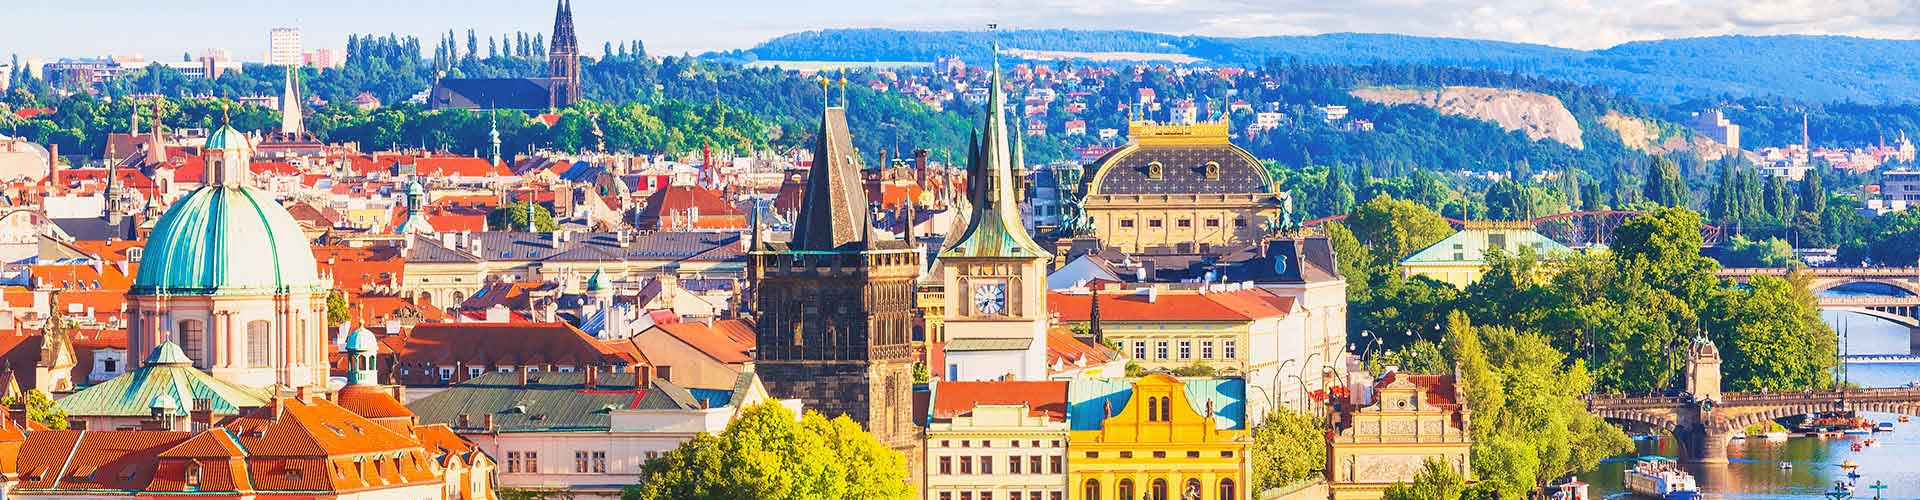 Prague – Hotels in Prague 17. Maps of Prague, Photos and Reviews for each Hotel in Prague.